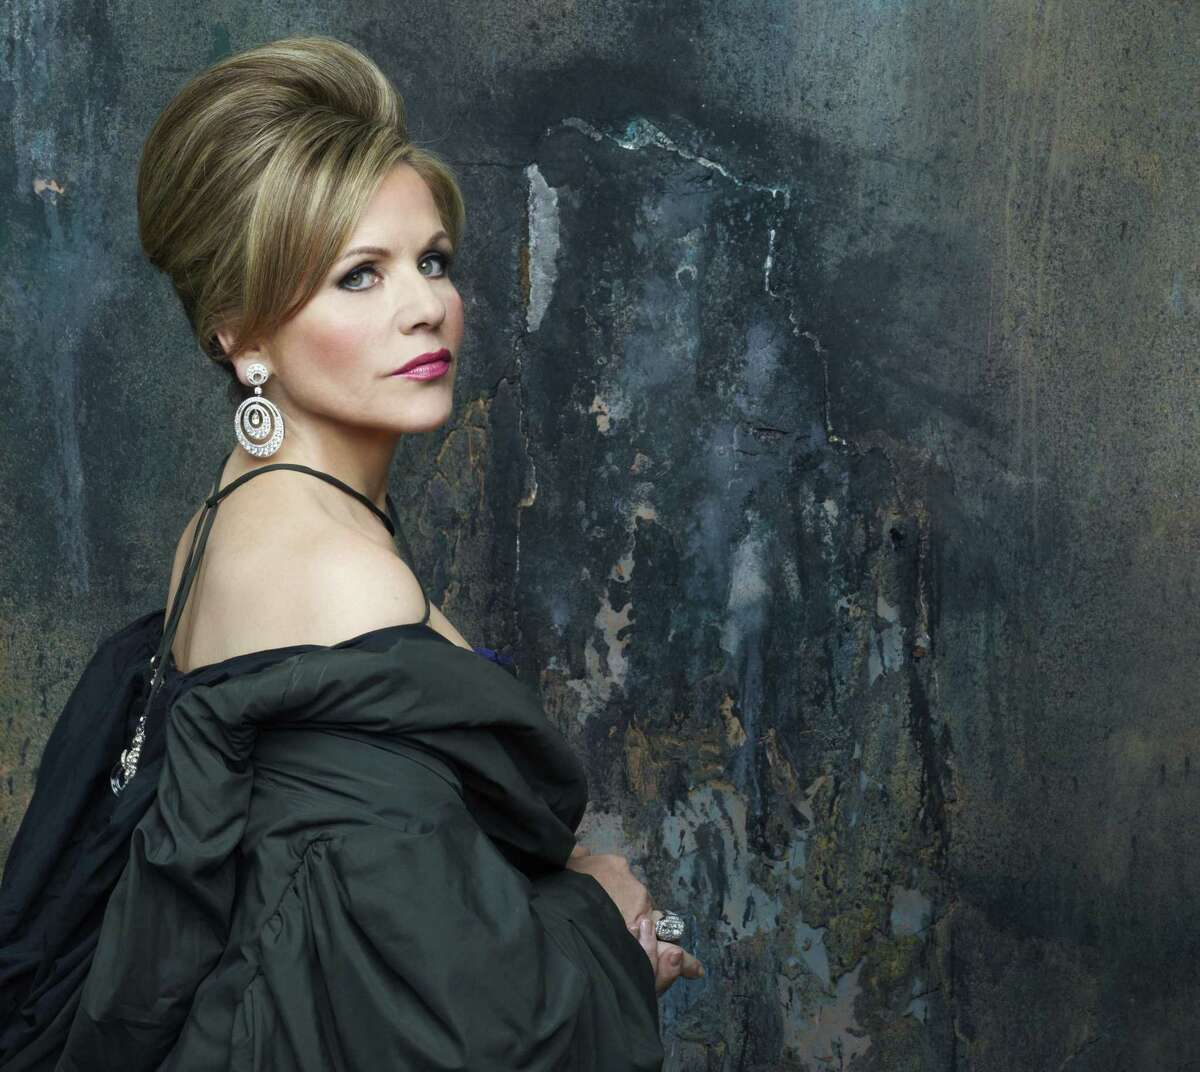 Soprano star Renee Fleming performed in recital Wednesday night at the Tobin Center for the Performing Arts.